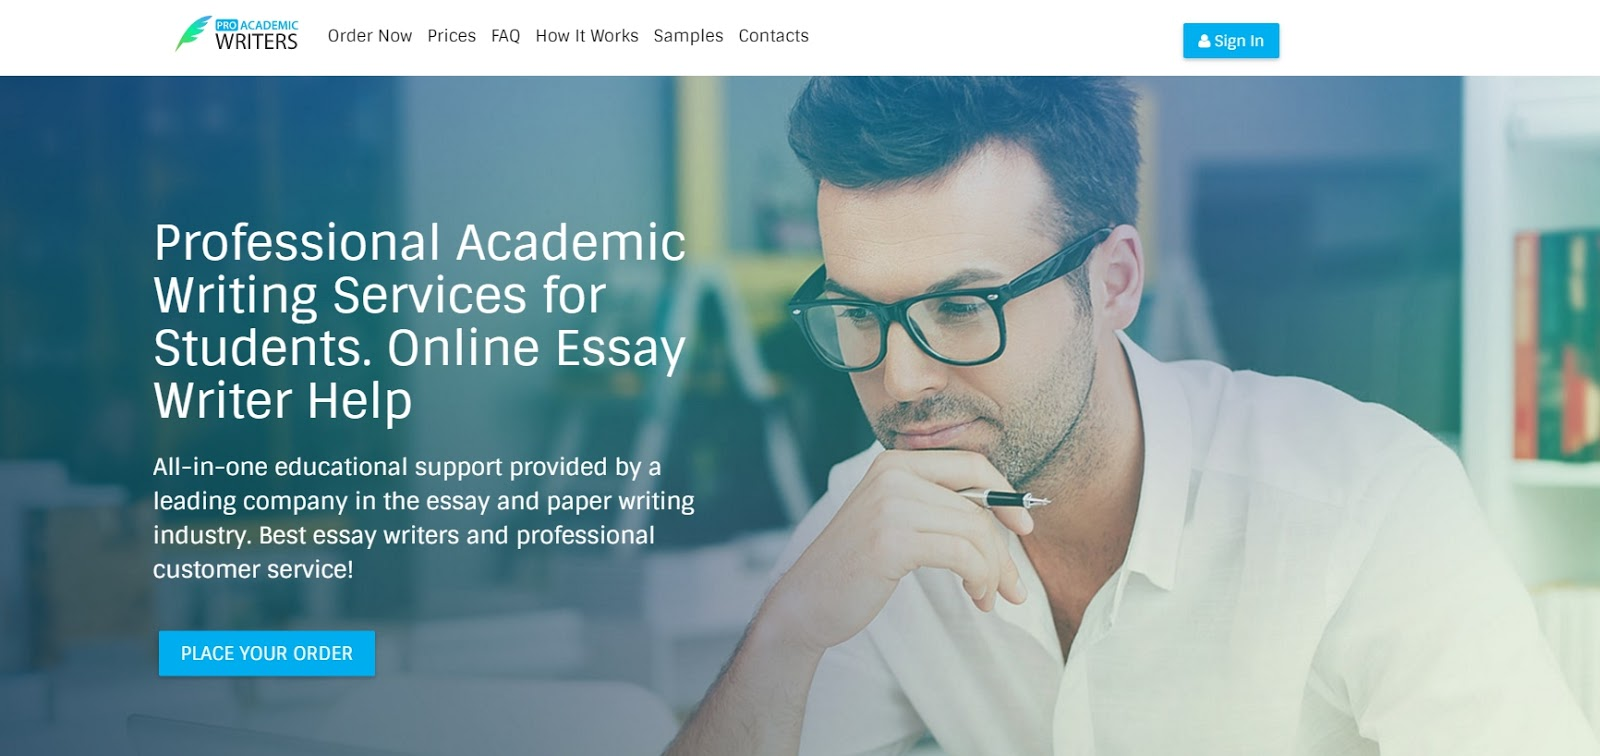 best essay writing companies what are the best online essay writing     pro academic writers com essay writing service review trusted pro academic  writers com essay writing service